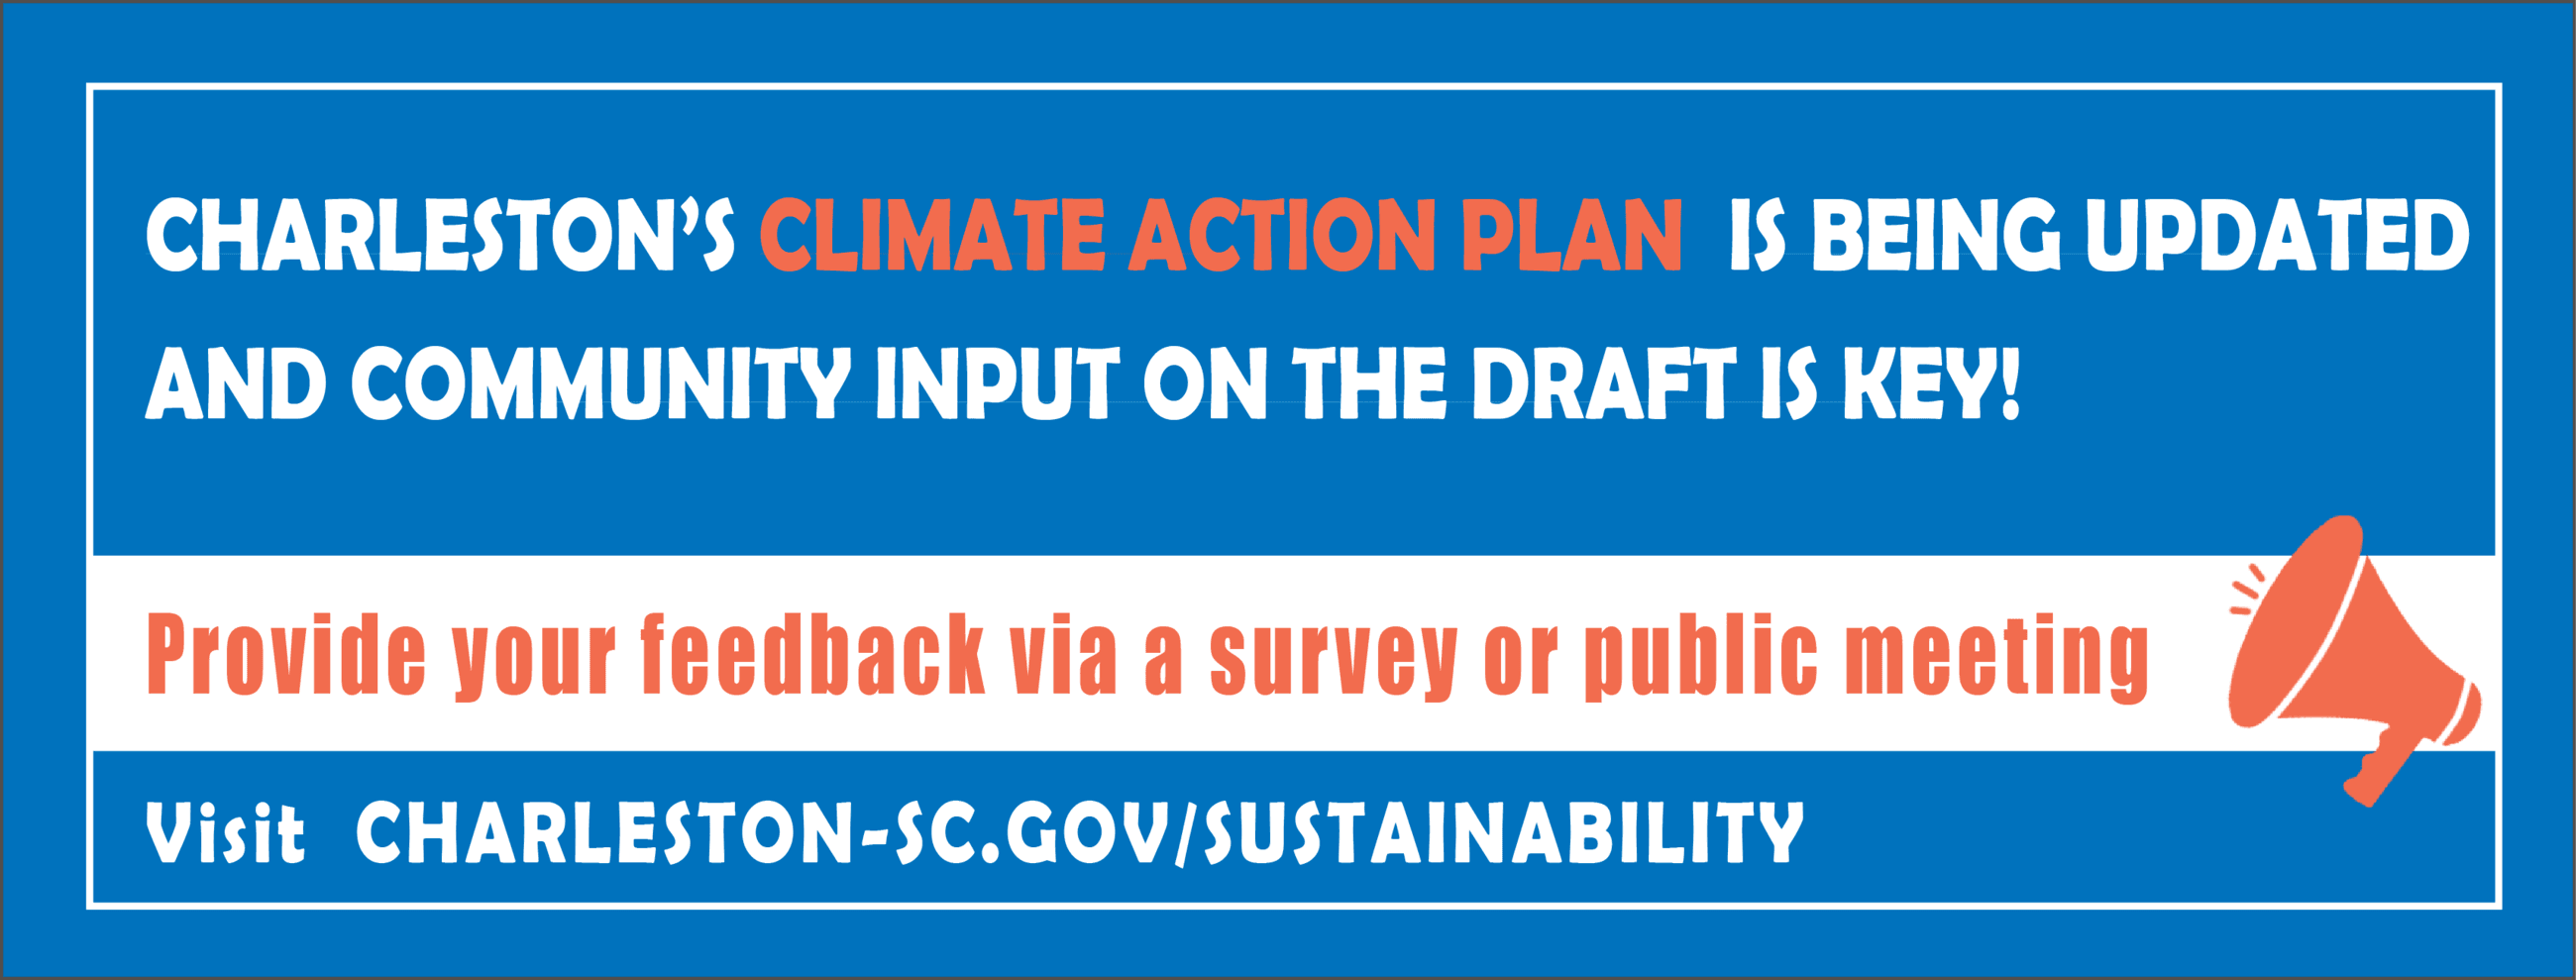 Climate Action Plan fb banner for survey and public meeting-01